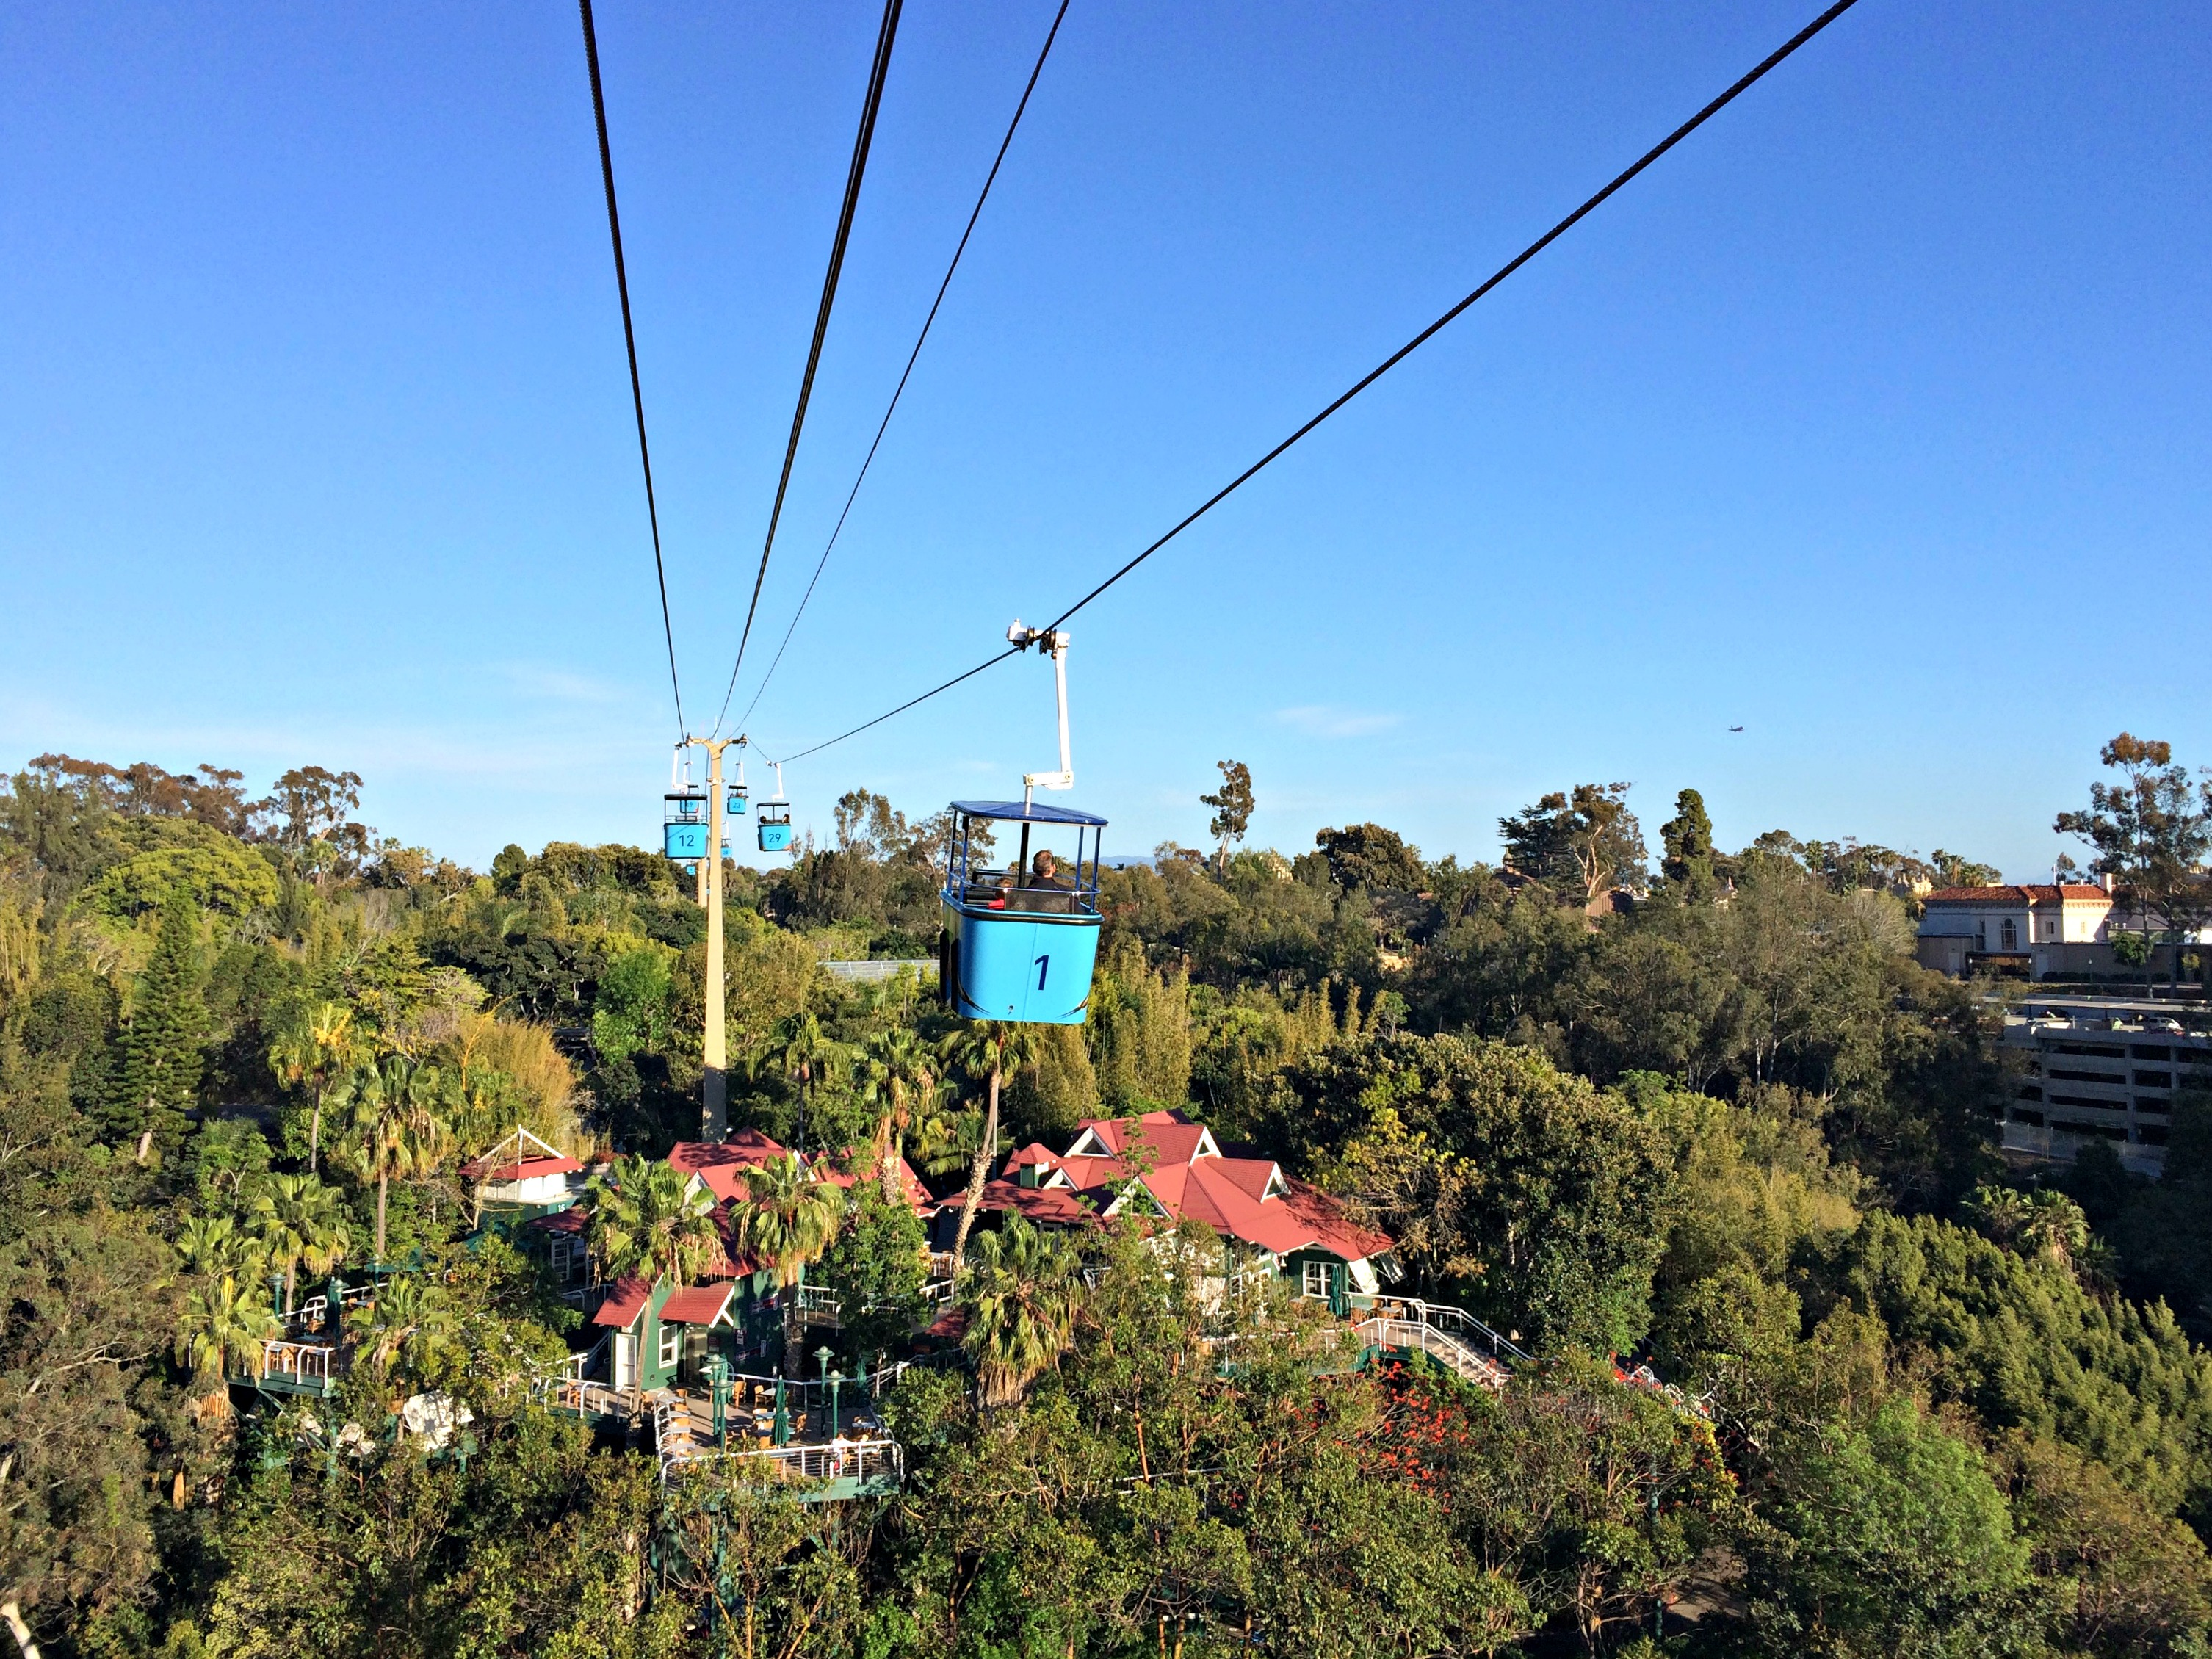 san diego zoo skyway ride